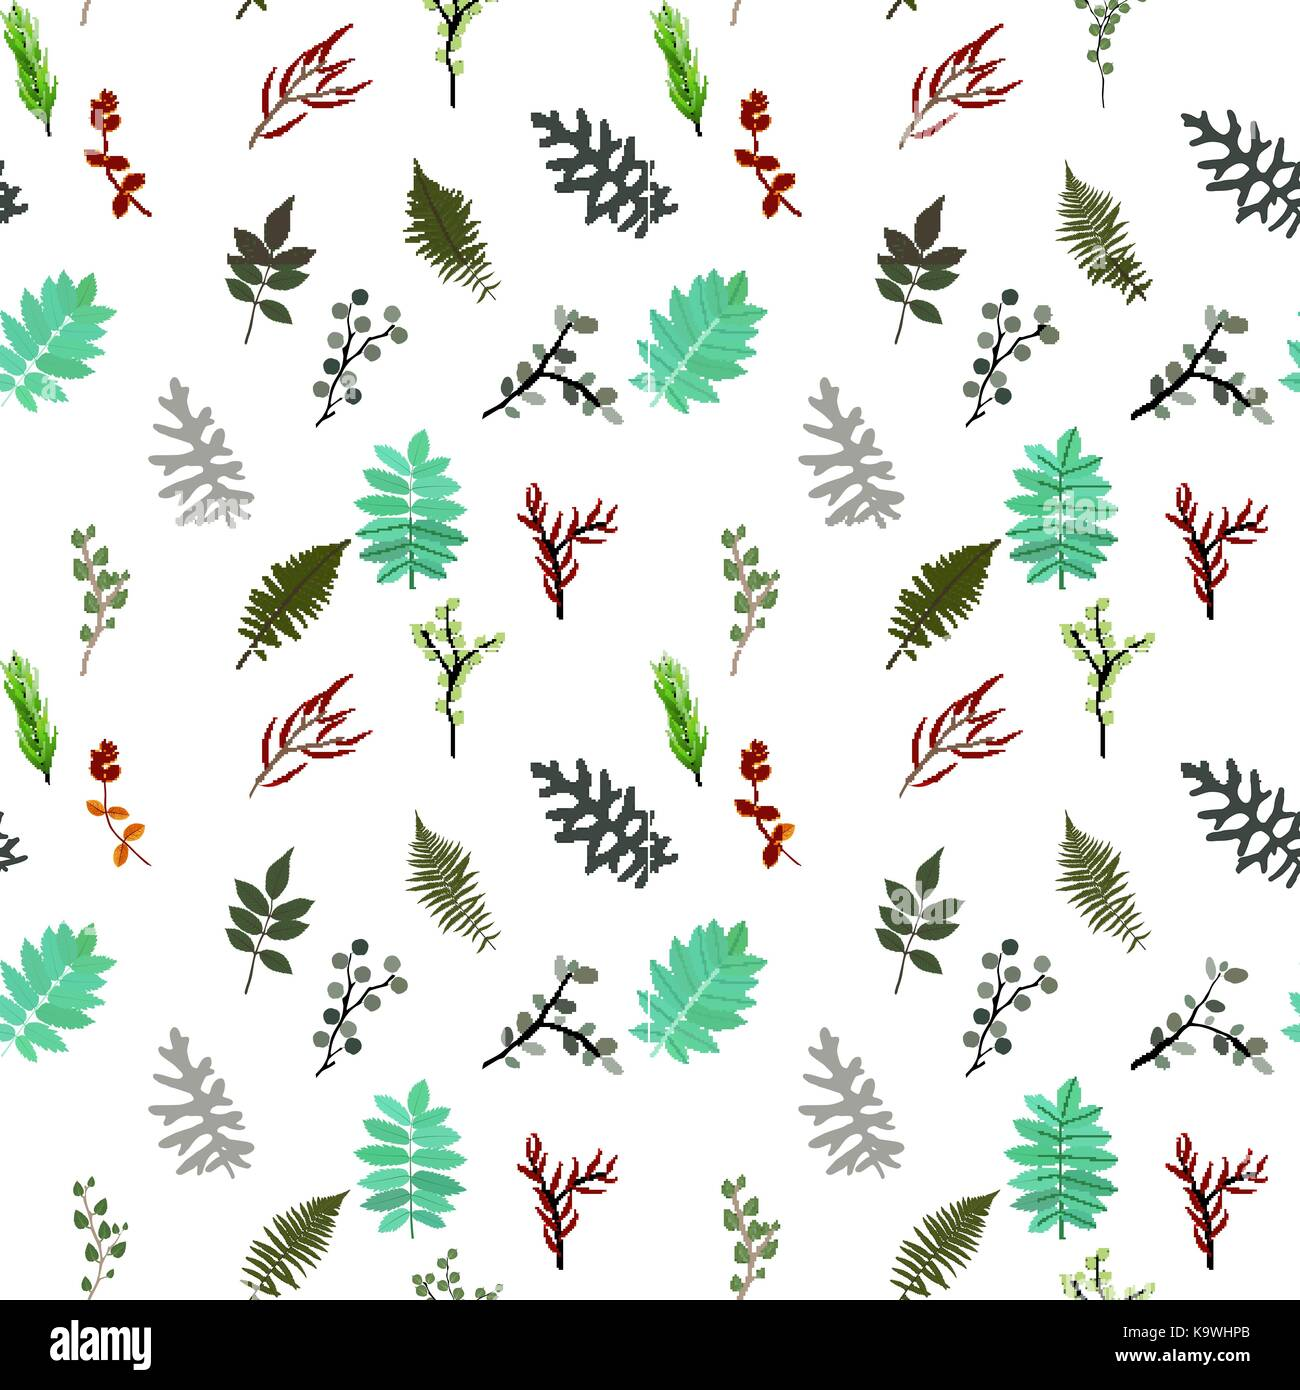 Tropical elements: Agonis, Eucalyptus, Annona, Balata, Zamiokulkas, Cissus. seamless pattern. Vector Illustration. - Stock Vector